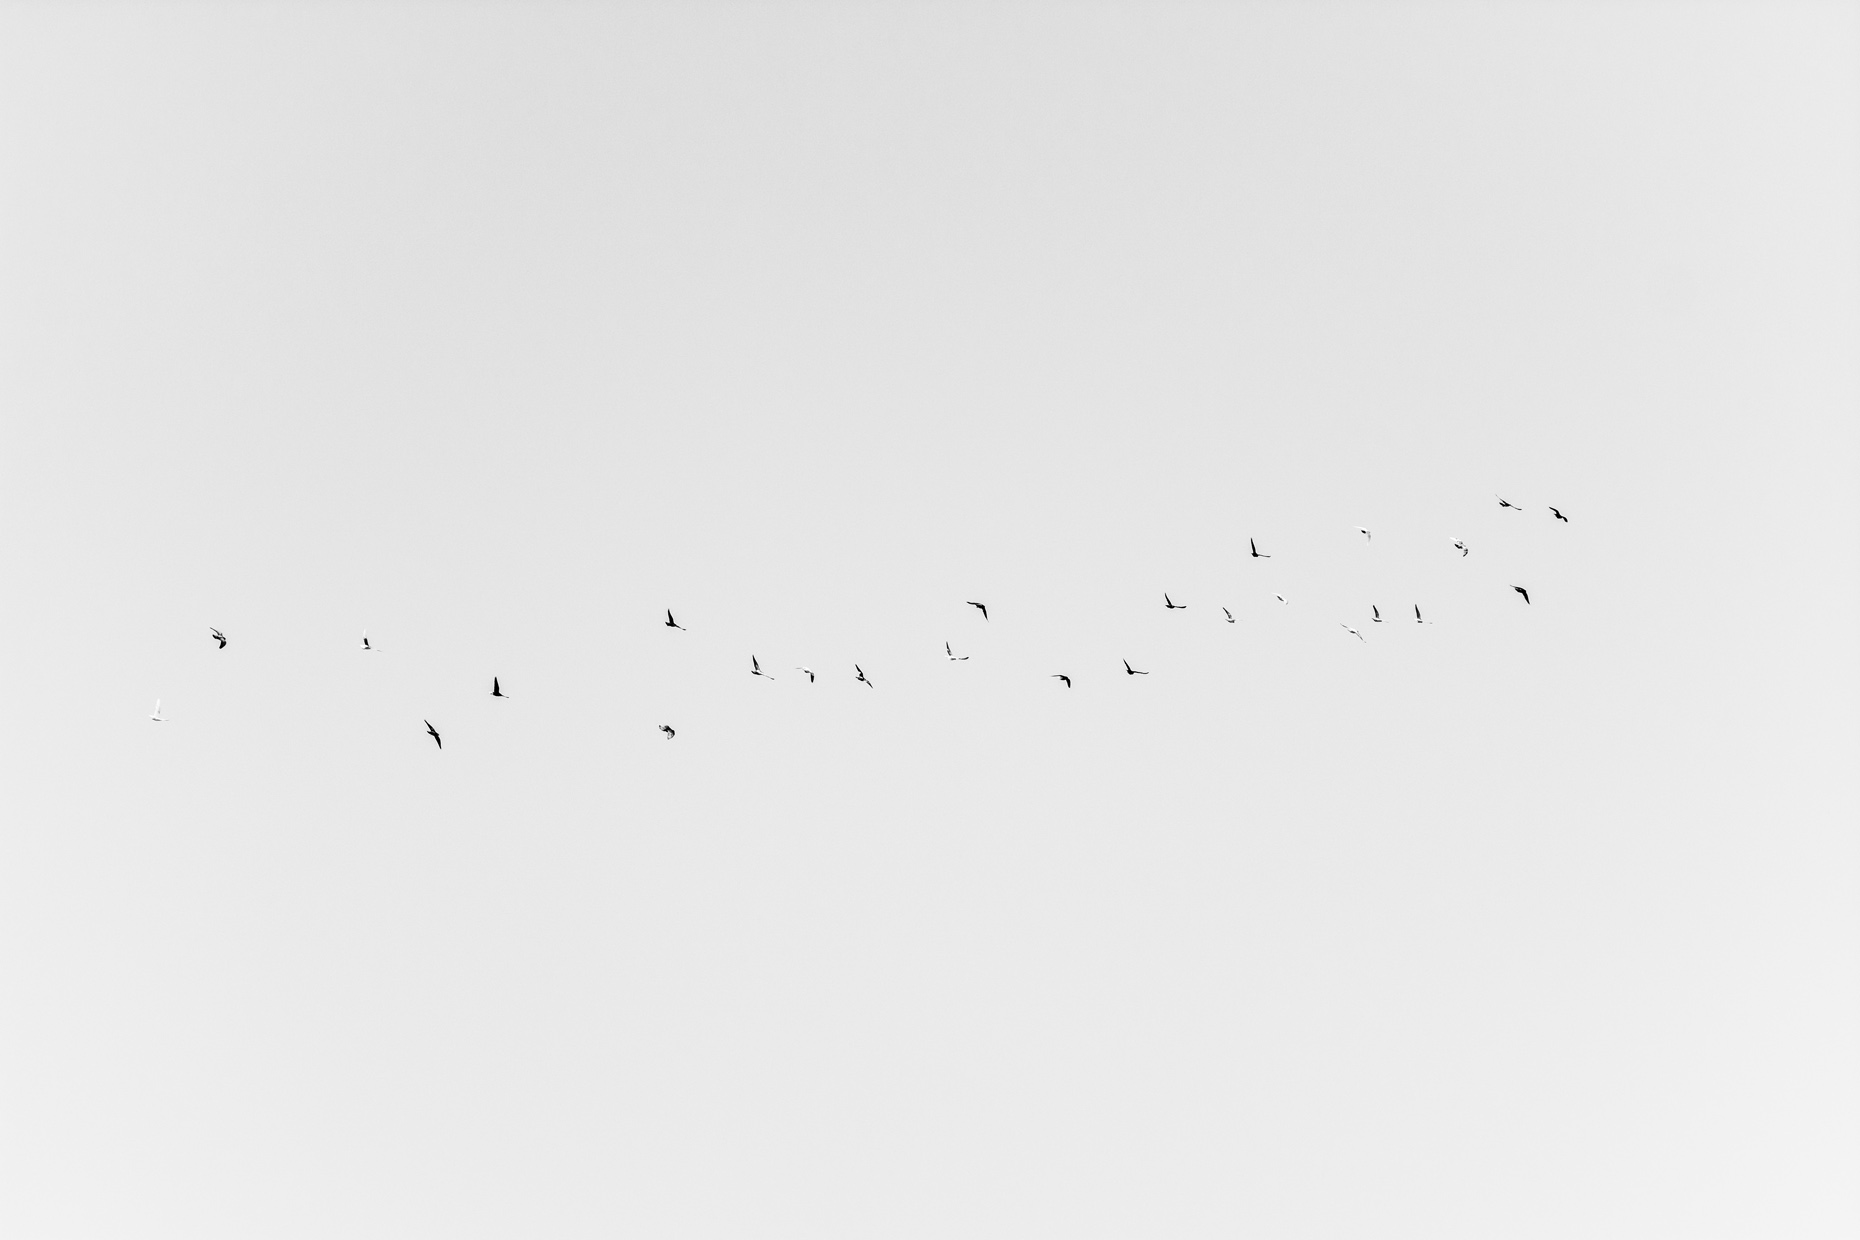 An image showing formations of feral pigeons in Tripoli, Lebanon. Part of the series Flight by George Burke